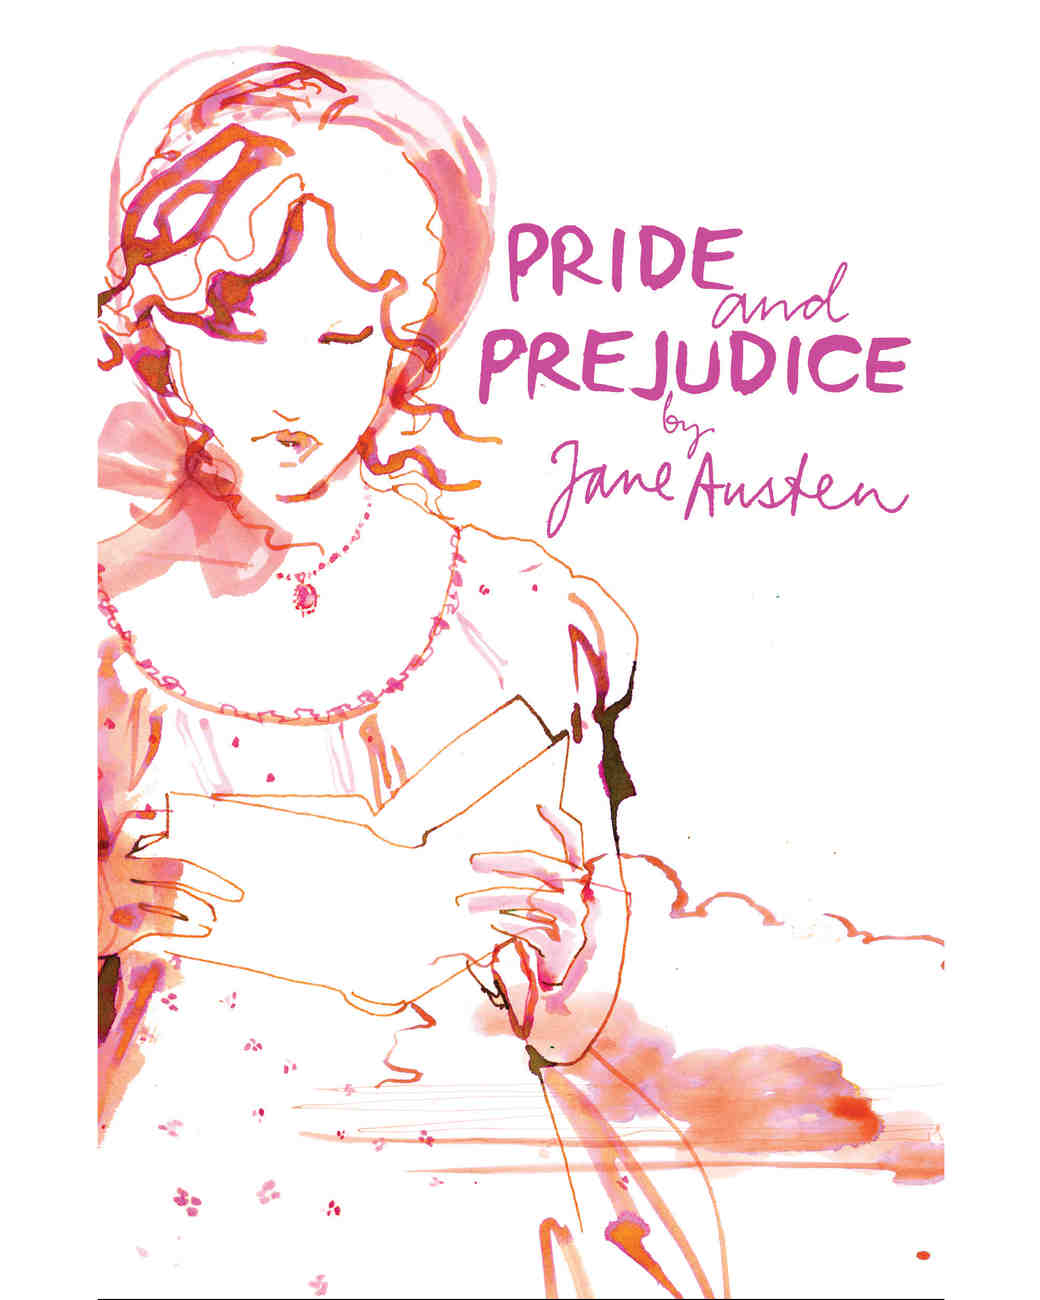 pride and prejudice understanding marriage Feminist understanding of pride and prejudice jenna deforte  the marriage  ideology underlying pride and prejudice the opening lines and major plot.